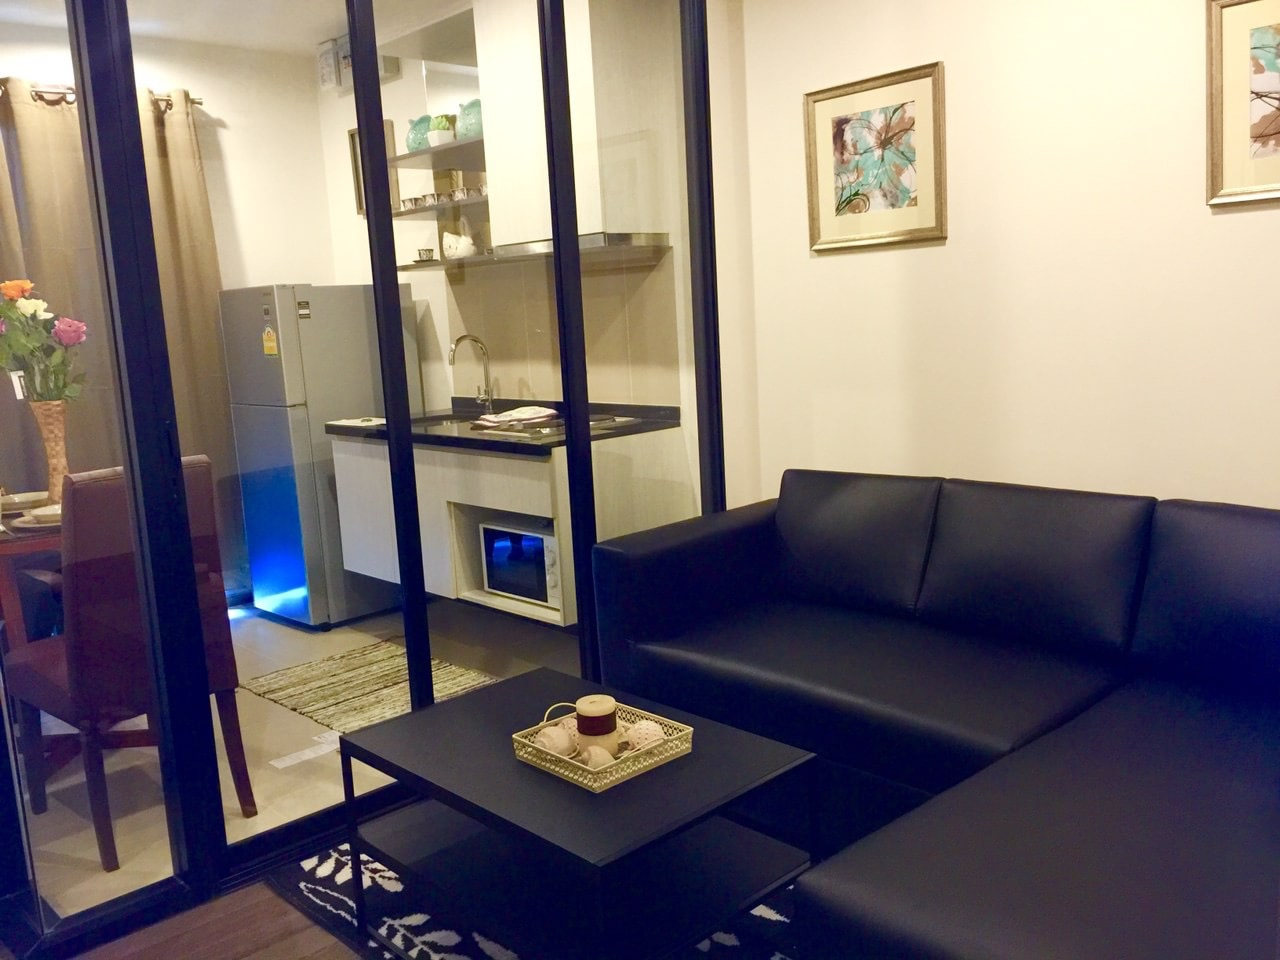 RE/MAX All Star Realty Agency's Ful furnished one bedder for rent 13,800 Baht at On Nut BTS – Basepark East (Soi 77) 11